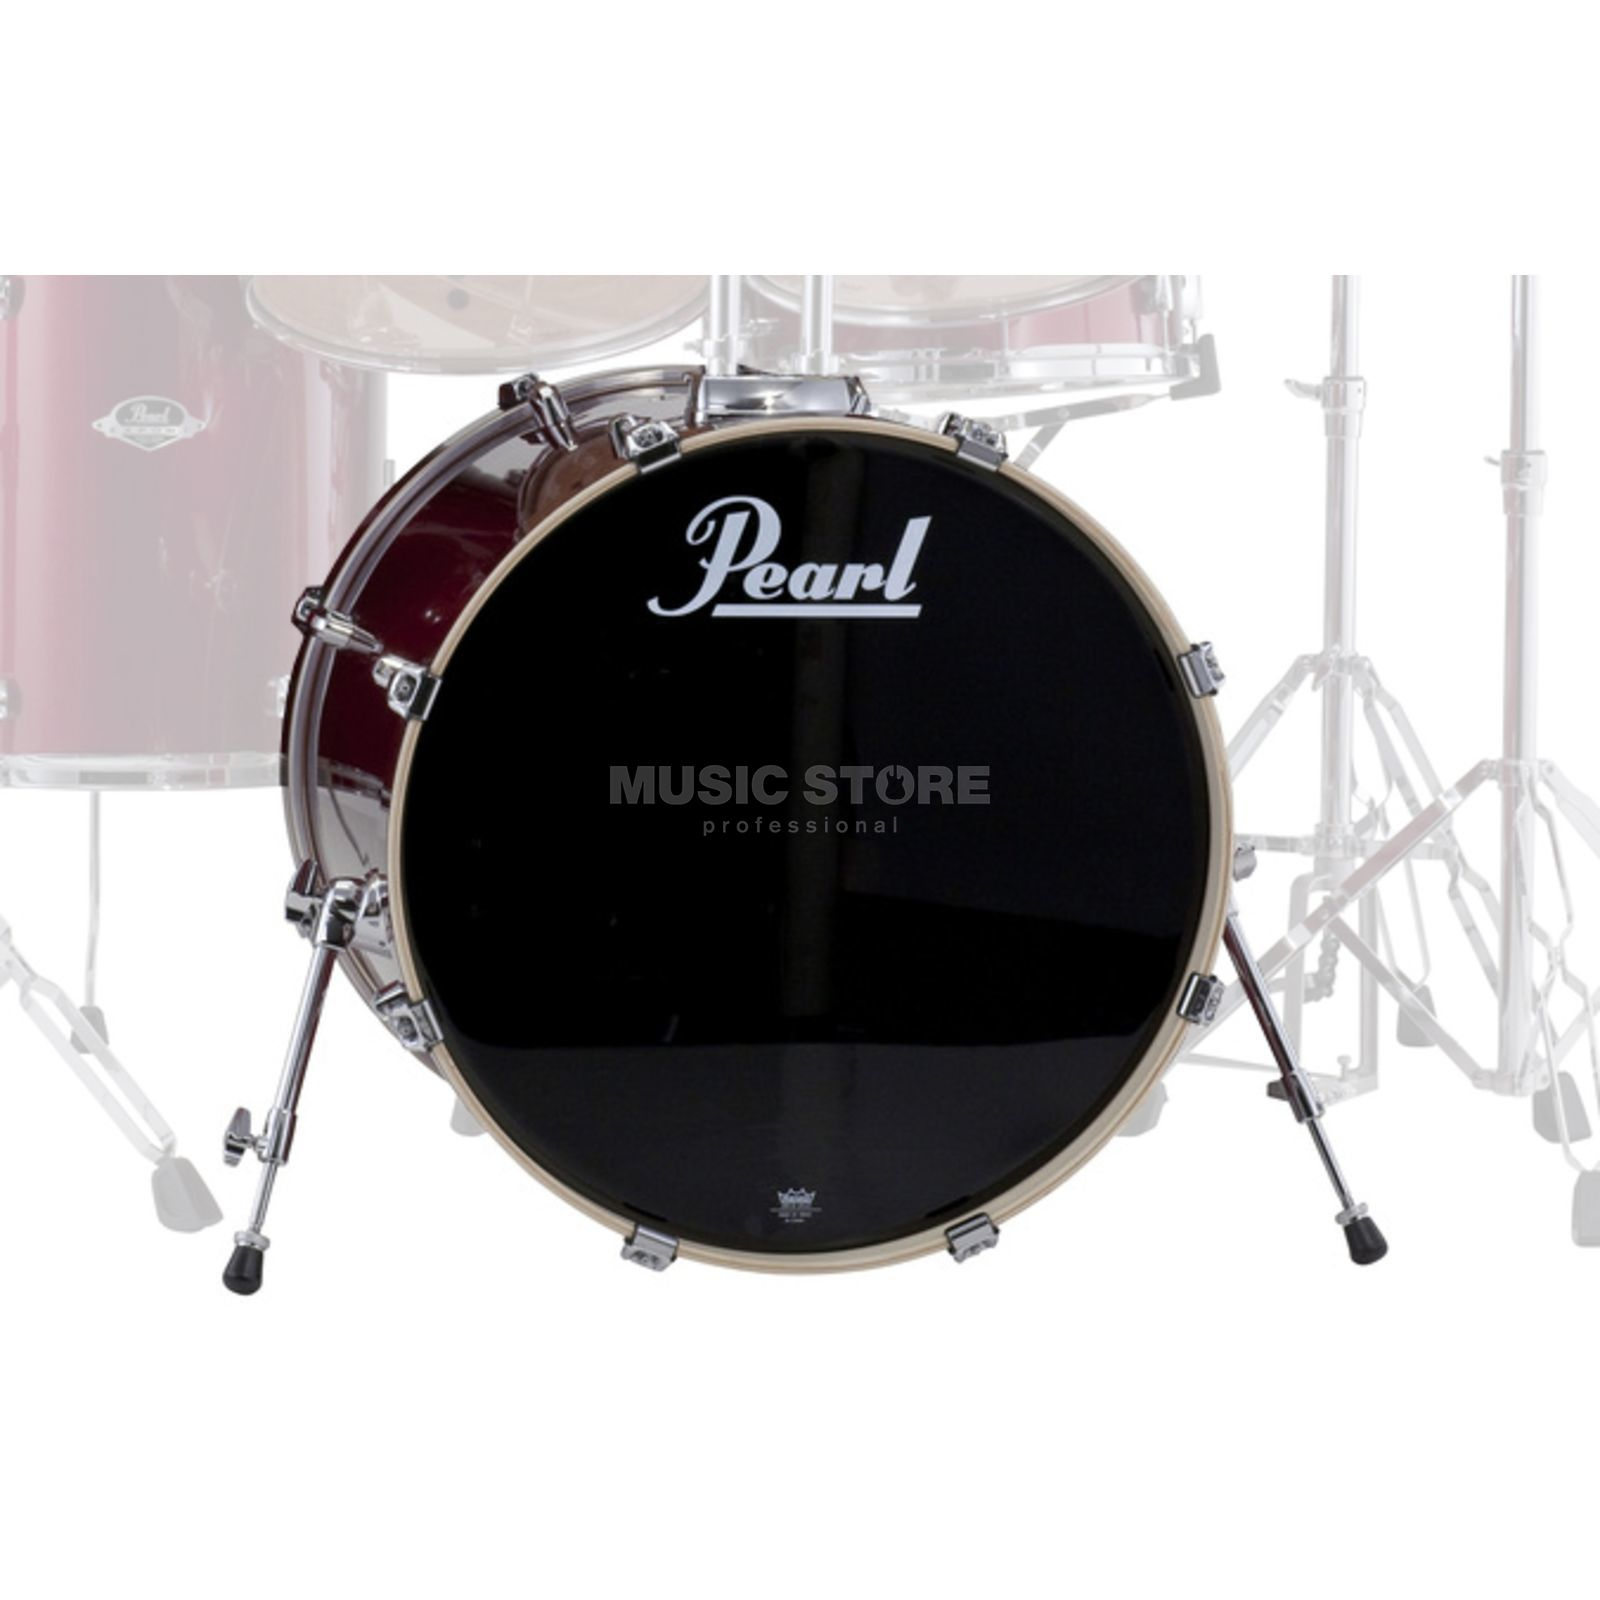 "Pearl Export EXX BassDrum 22""x18"", Red Wine #91 Product Image"